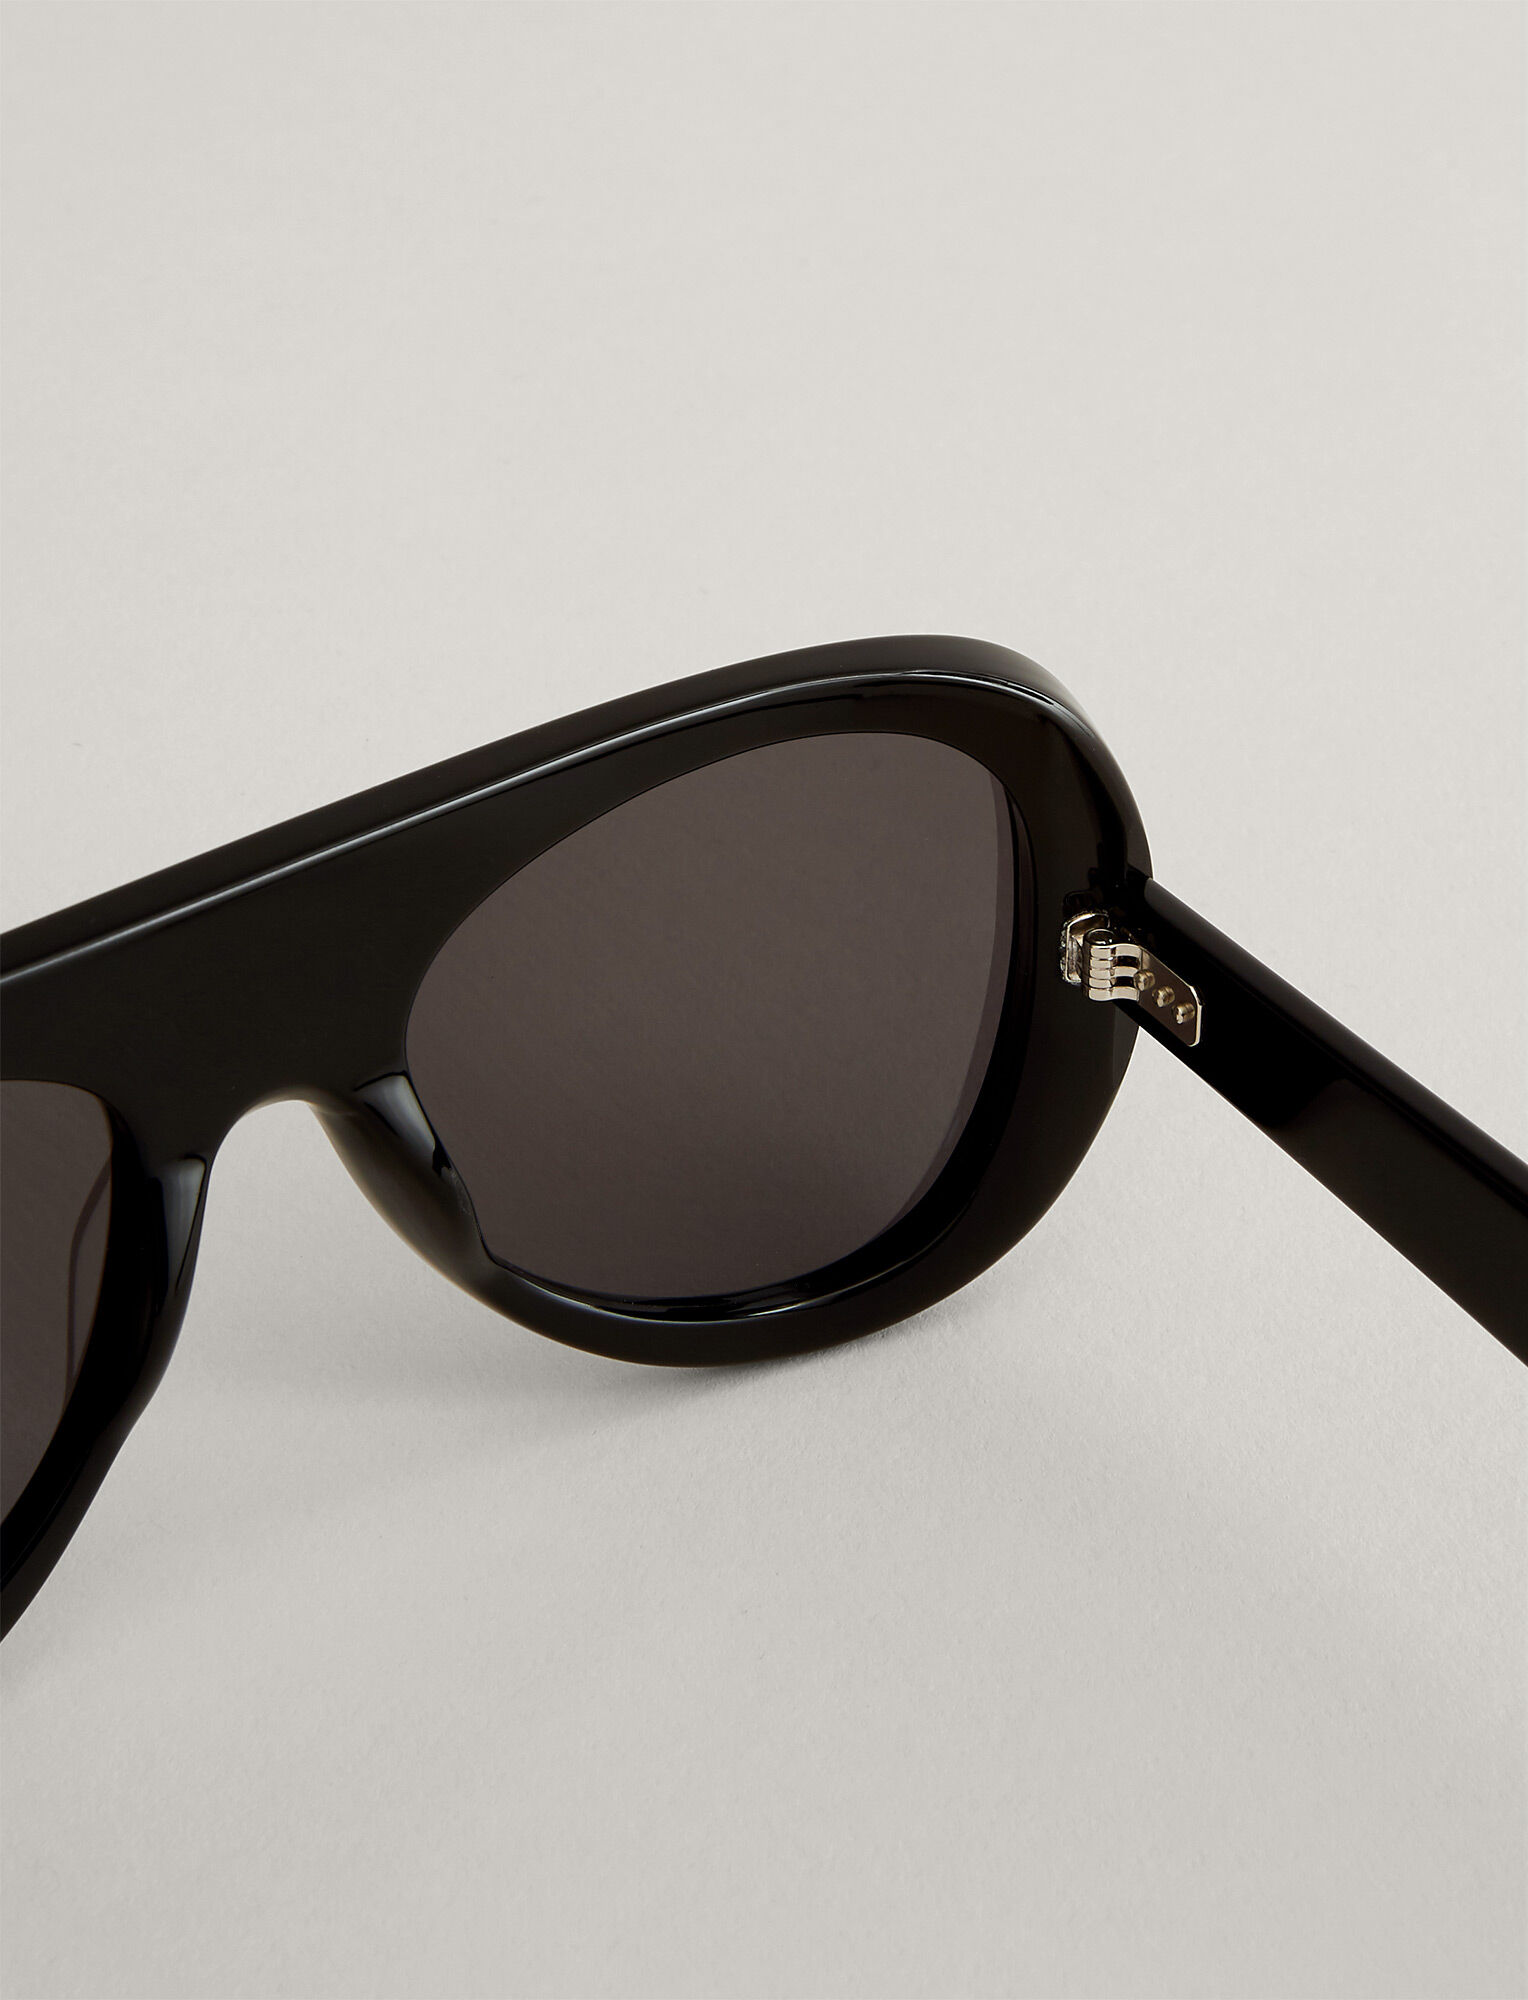 Joseph, Chelsea Sunglasses, in BLACK